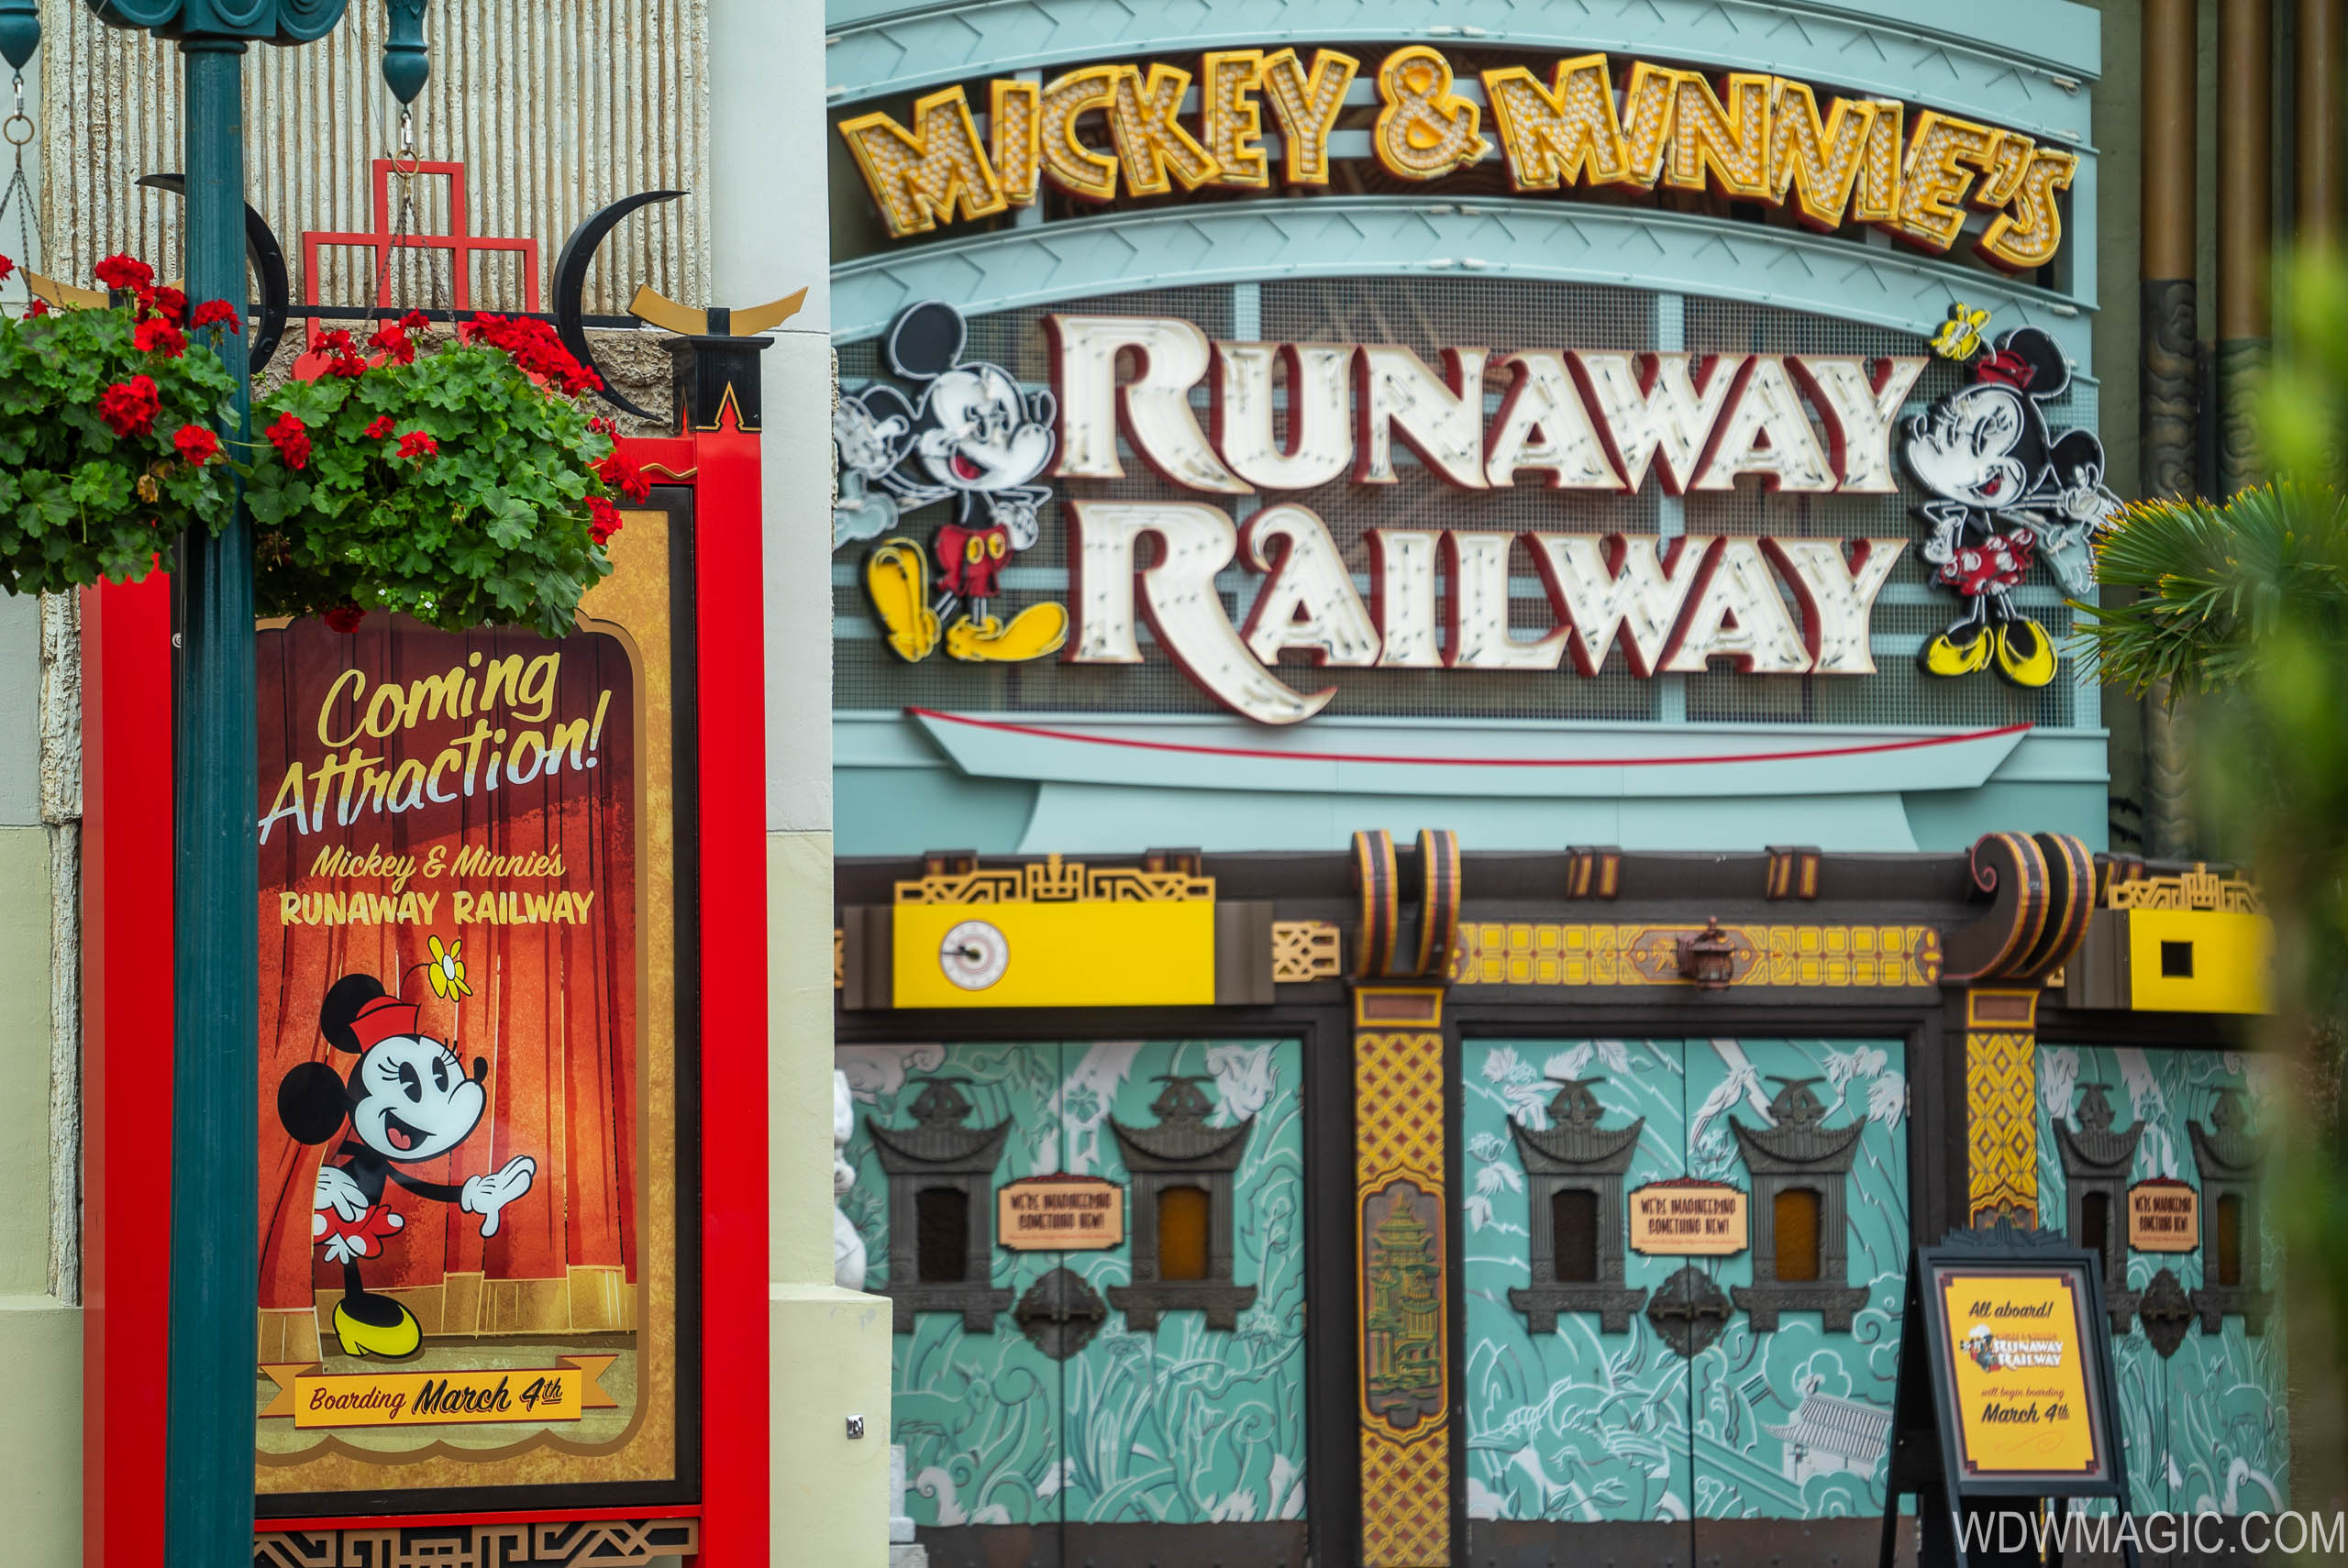 First ride impressions of Mickey and Minnie's Runaway Railway